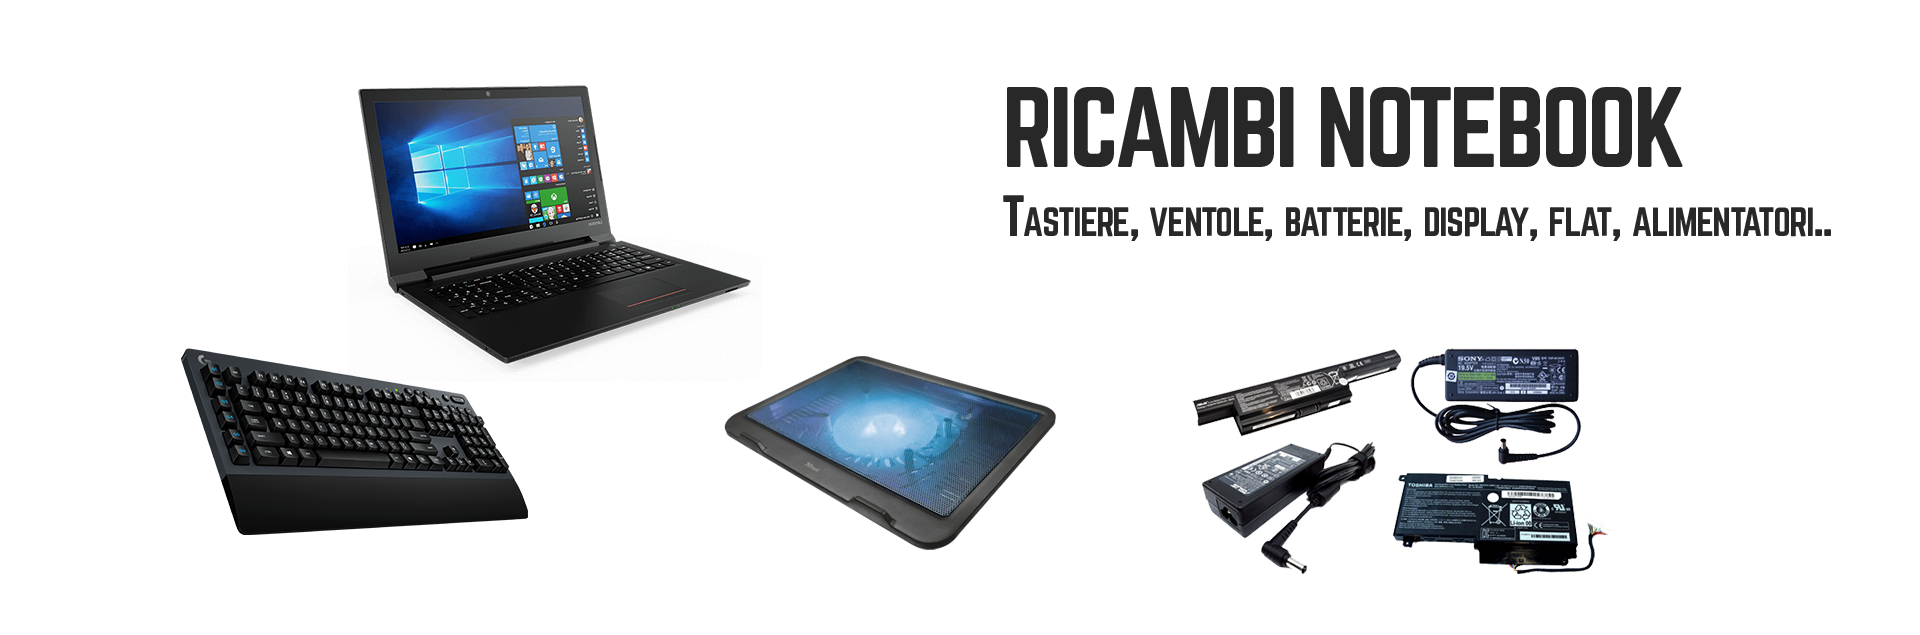 Ricambi notebook